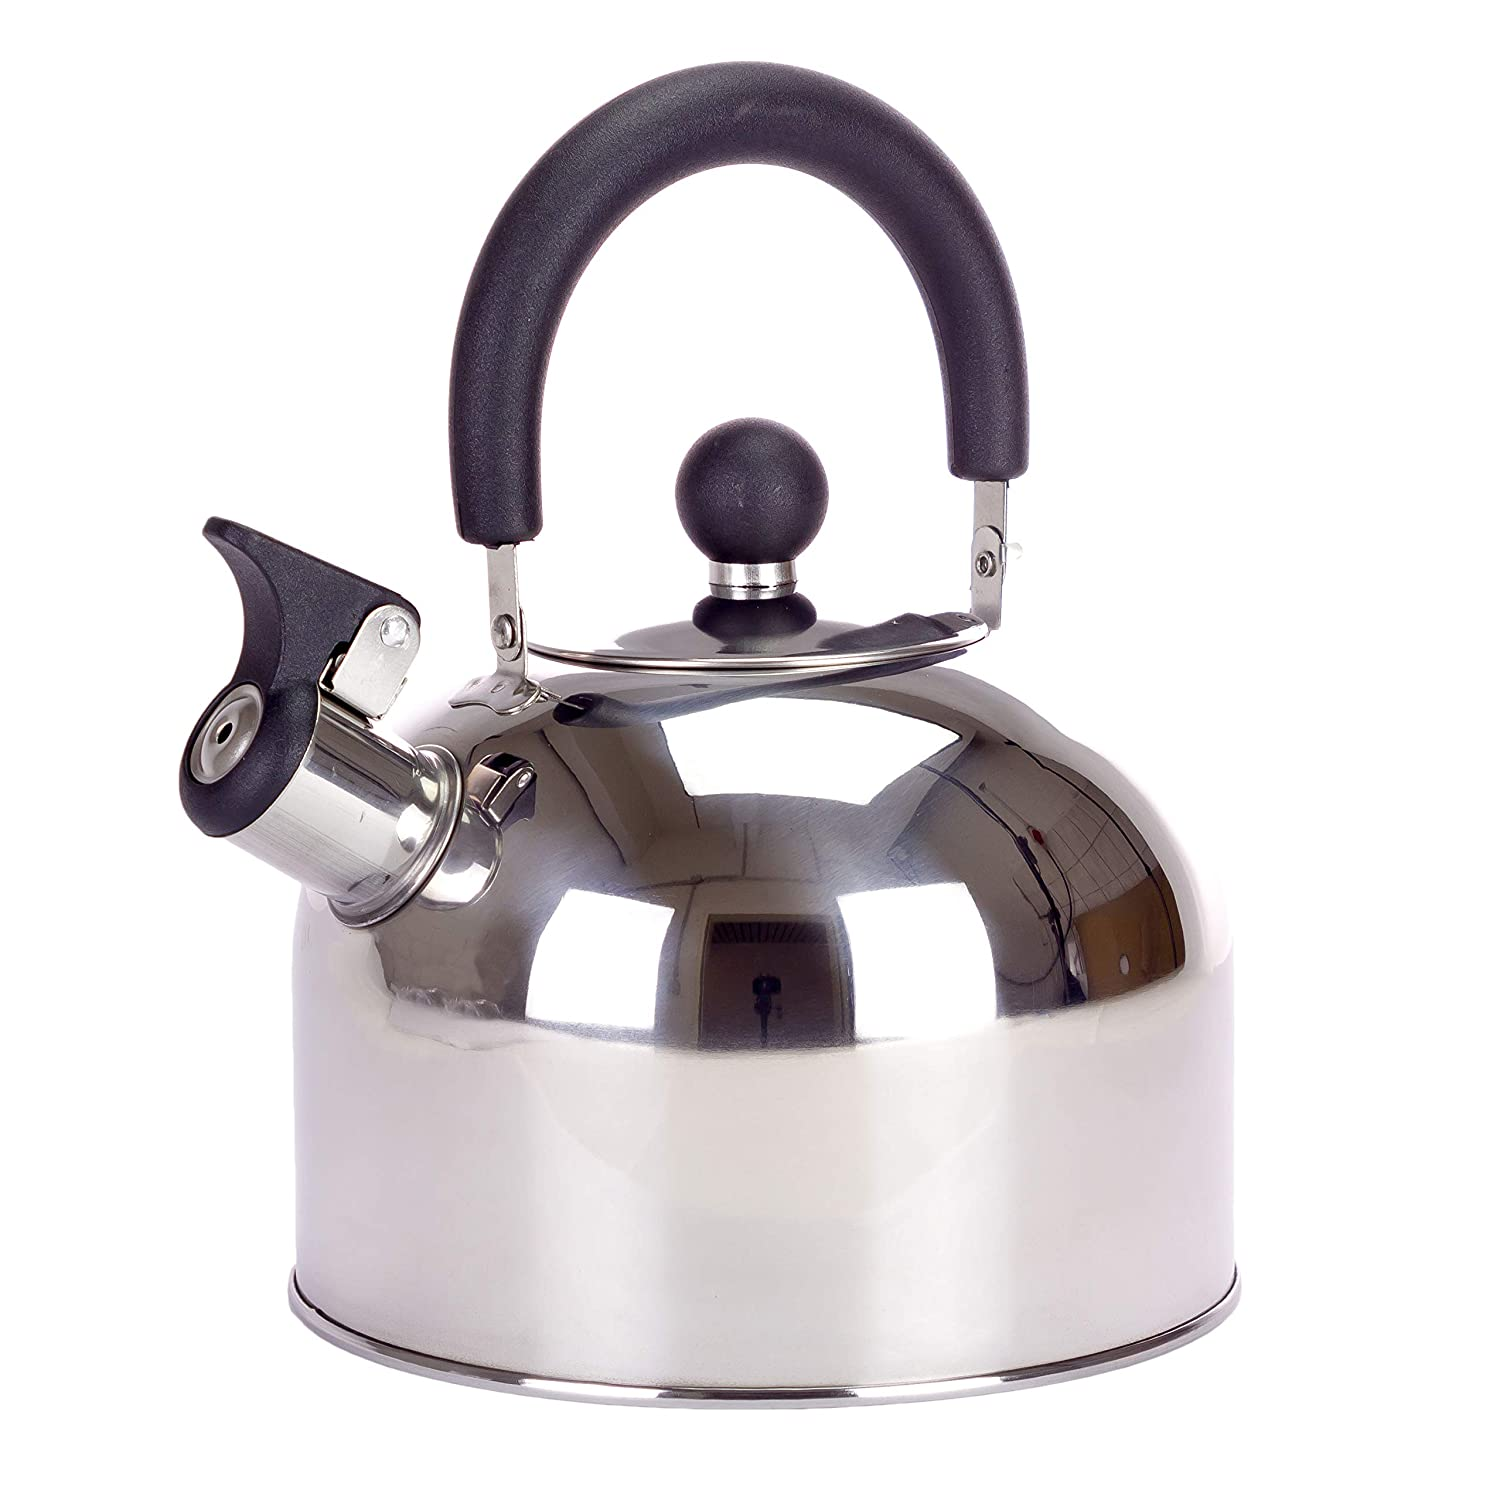 Kaliwaro Whistling Kettle Stainless Steel Tea Kettle for Induction Gas Hob Camping, 1,5L